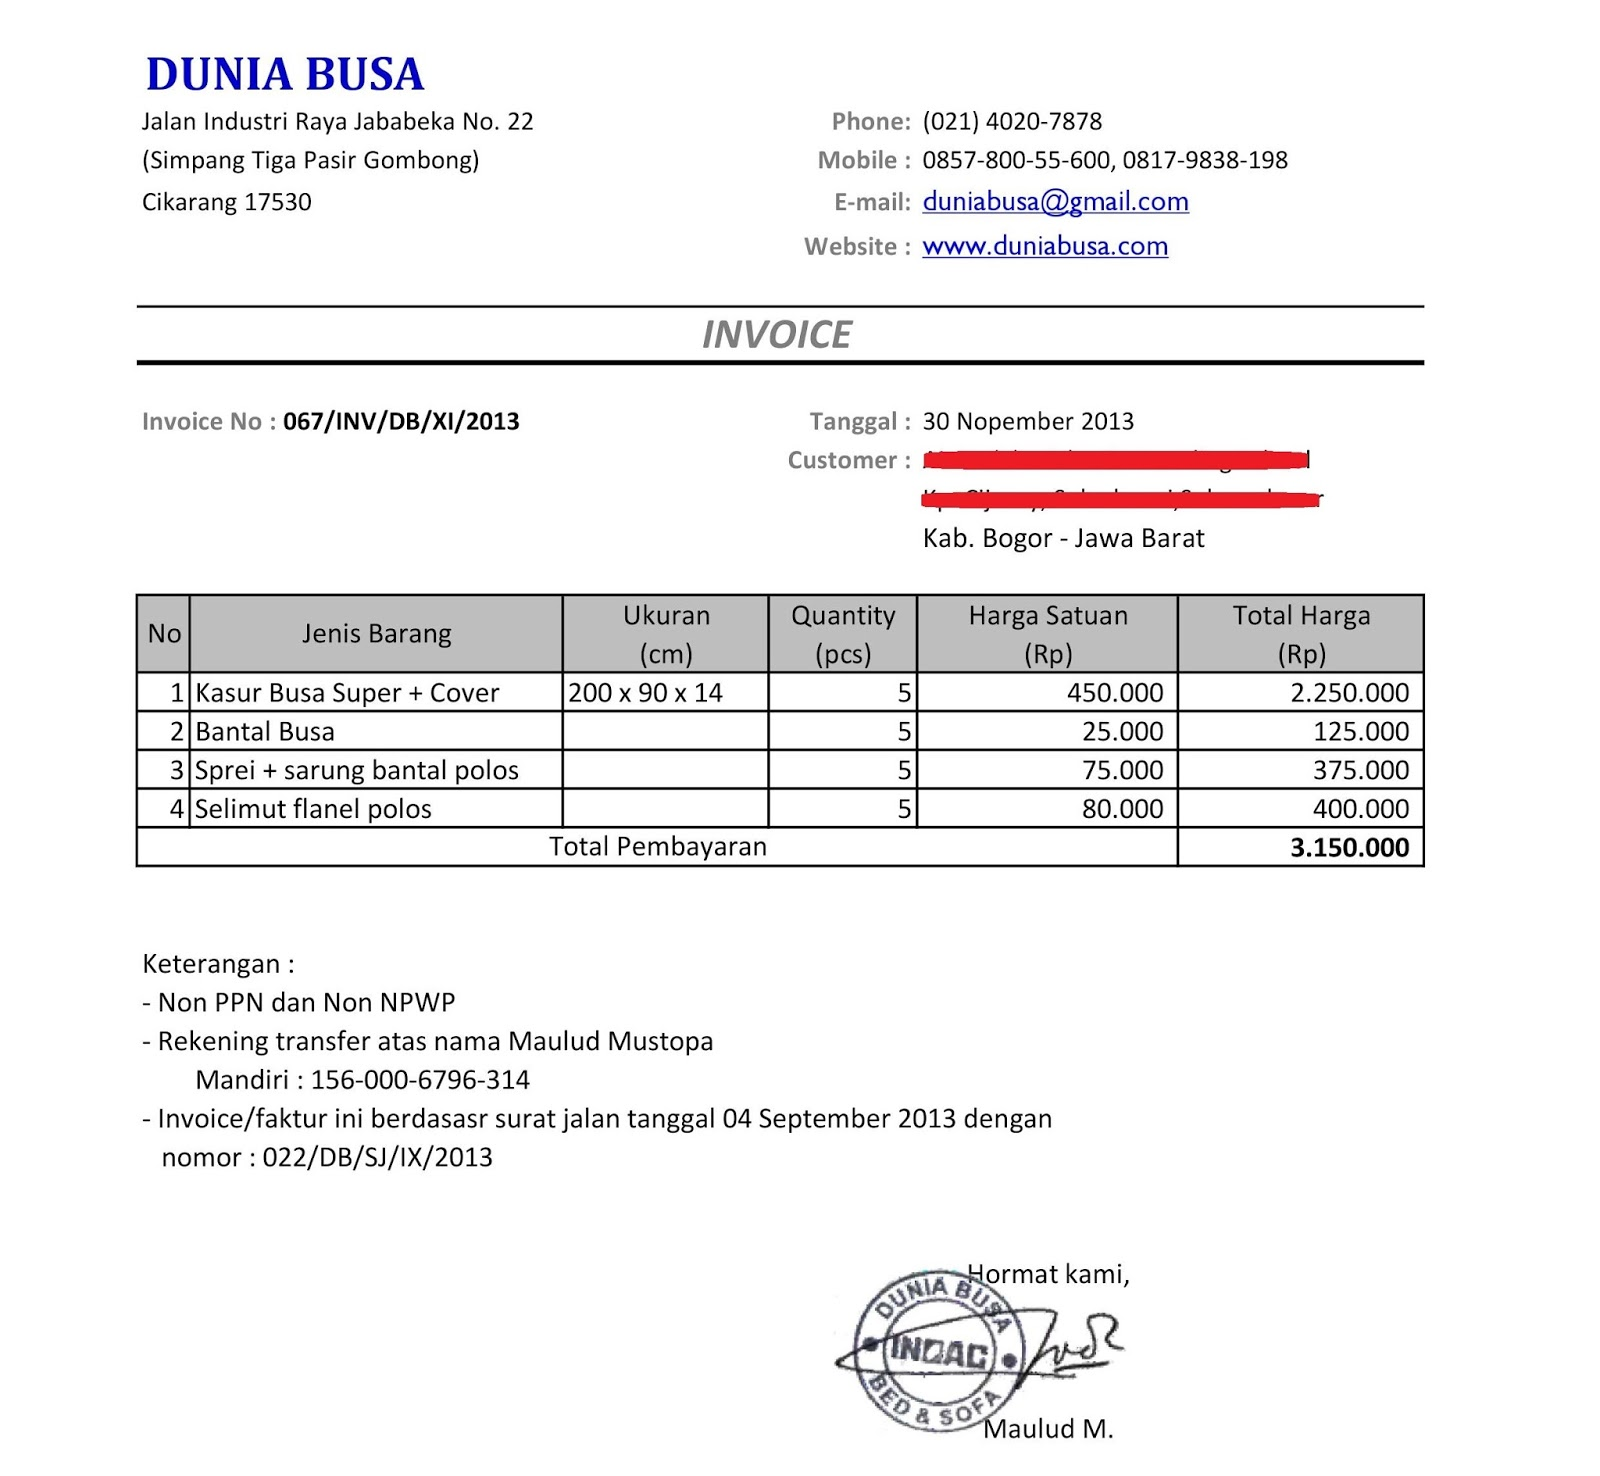 Ultrablogus  Splendid Free Invoice Online  Create Invoice Online  Invoice Template  With Engaging Contoh Format Invoice Atau Surat Tagihan  Brankas Arsip  Free Invoice Online With Cool Tax Invoice Sample Also Invoicing Application In Addition Excel Sample Invoice And What Is An Invoice In Business As Well As Invoice Number Sample Additionally Statement Of Invoices From Sklepco With Ultrablogus  Engaging Free Invoice Online  Create Invoice Online  Invoice Template  With Cool Contoh Format Invoice Atau Surat Tagihan  Brankas Arsip  Free Invoice Online And Splendid Tax Invoice Sample Also Invoicing Application In Addition Excel Sample Invoice From Sklepco